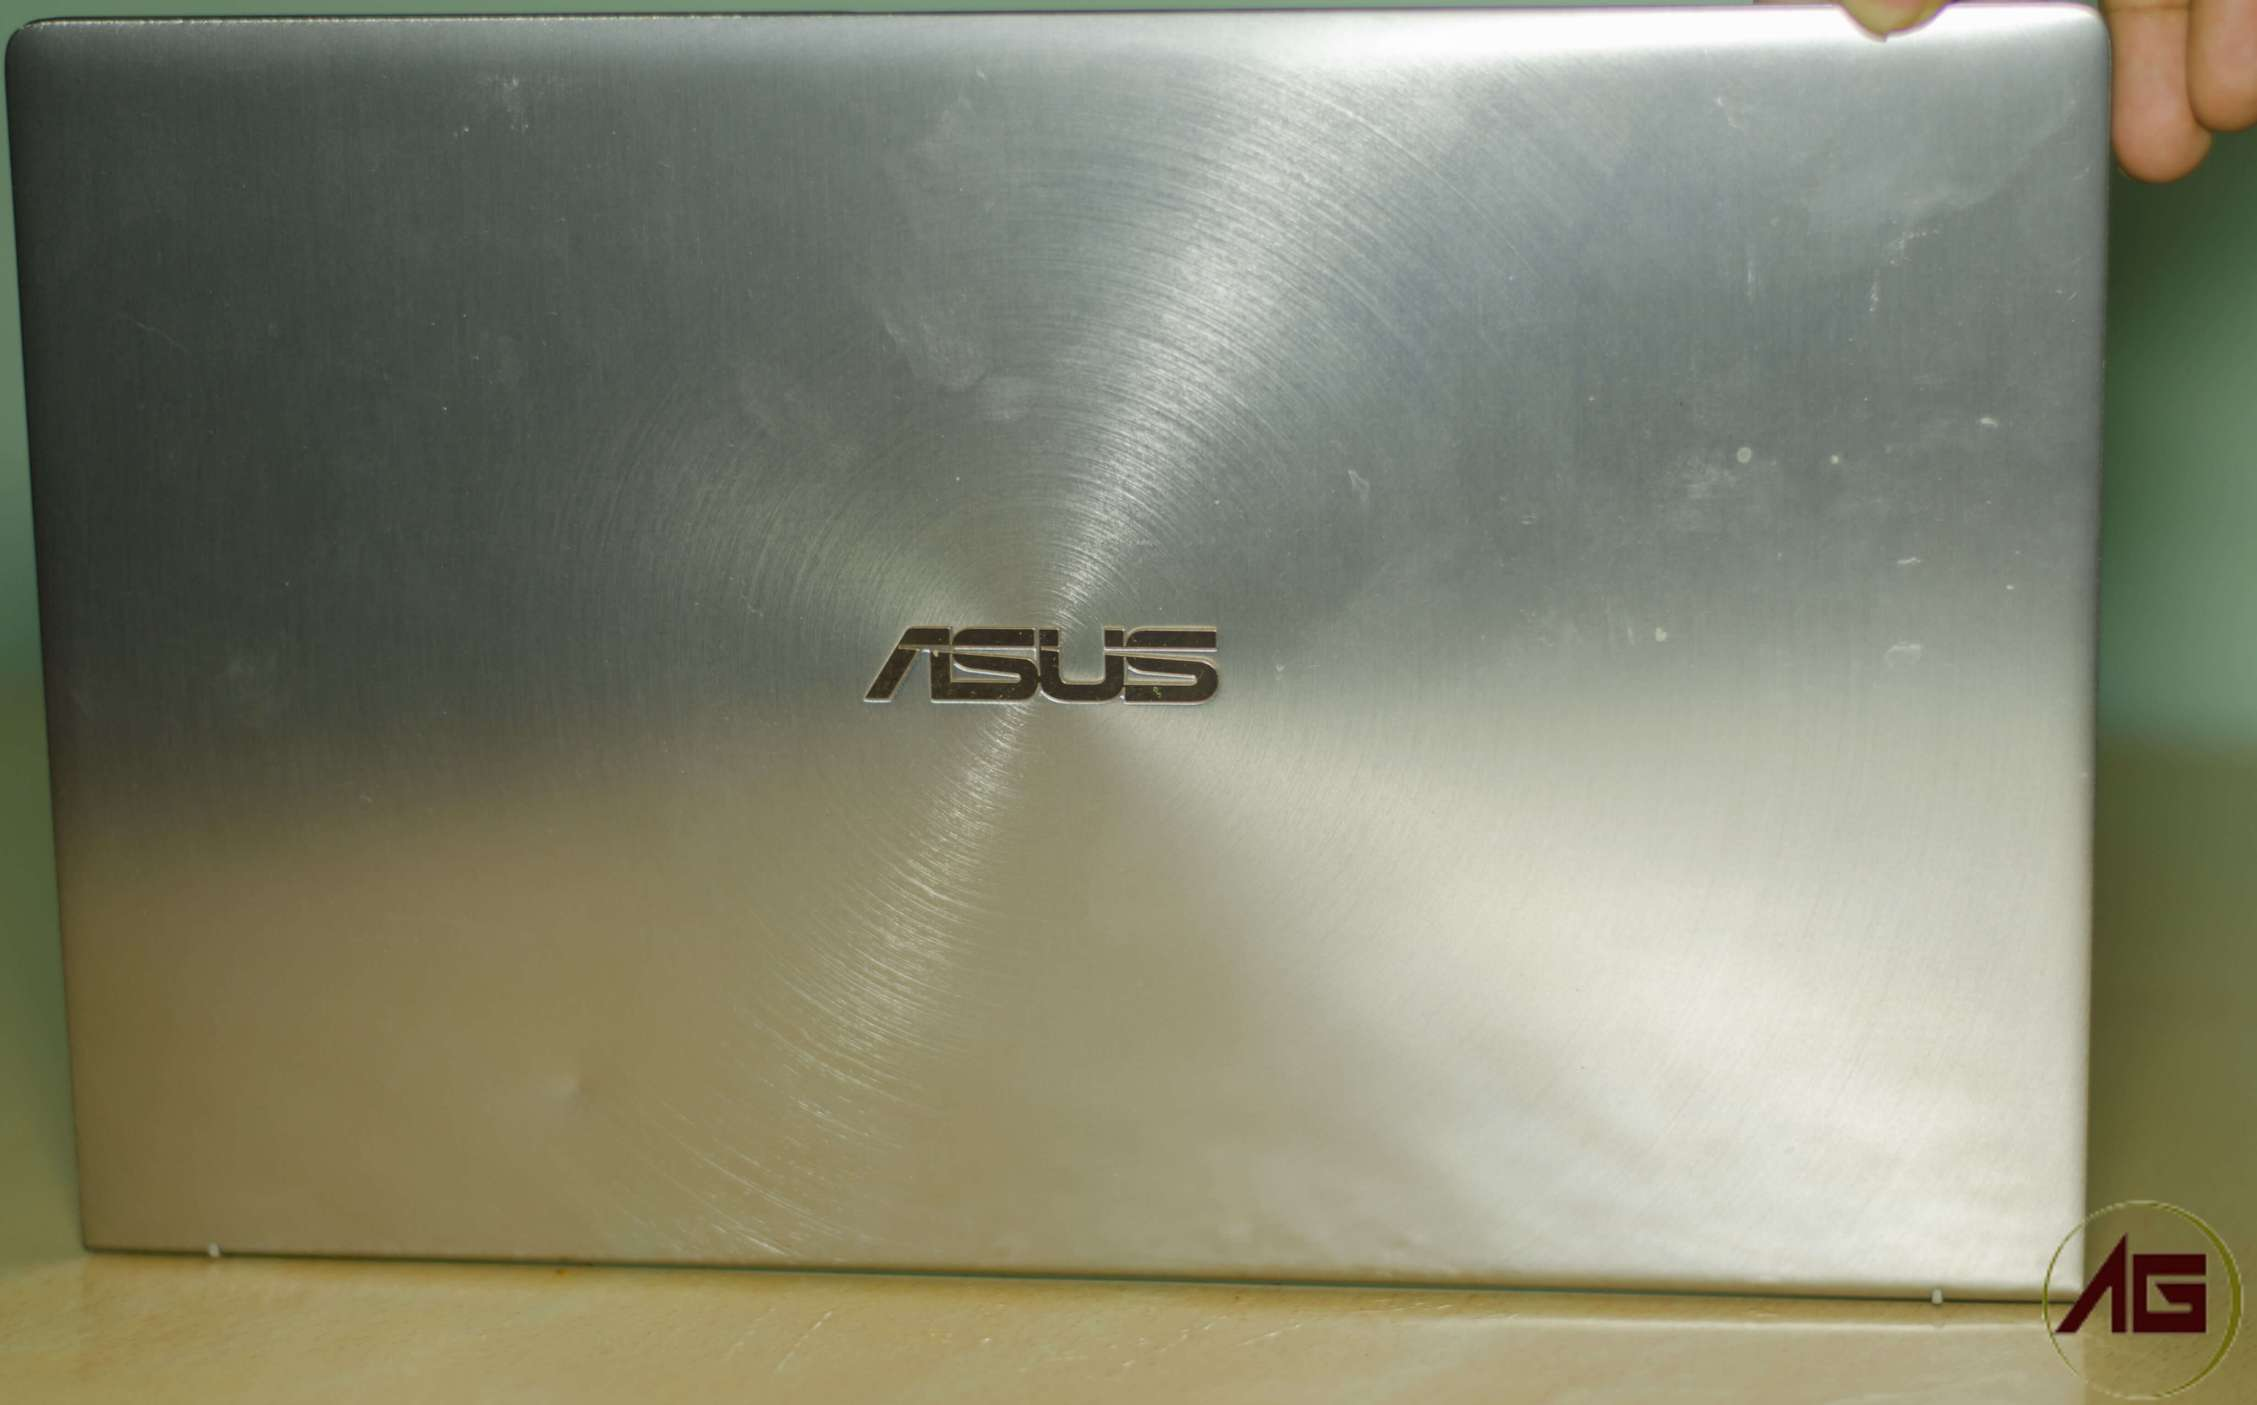 Asus Zenbook 14 UX433F Review - Slim and Innovative